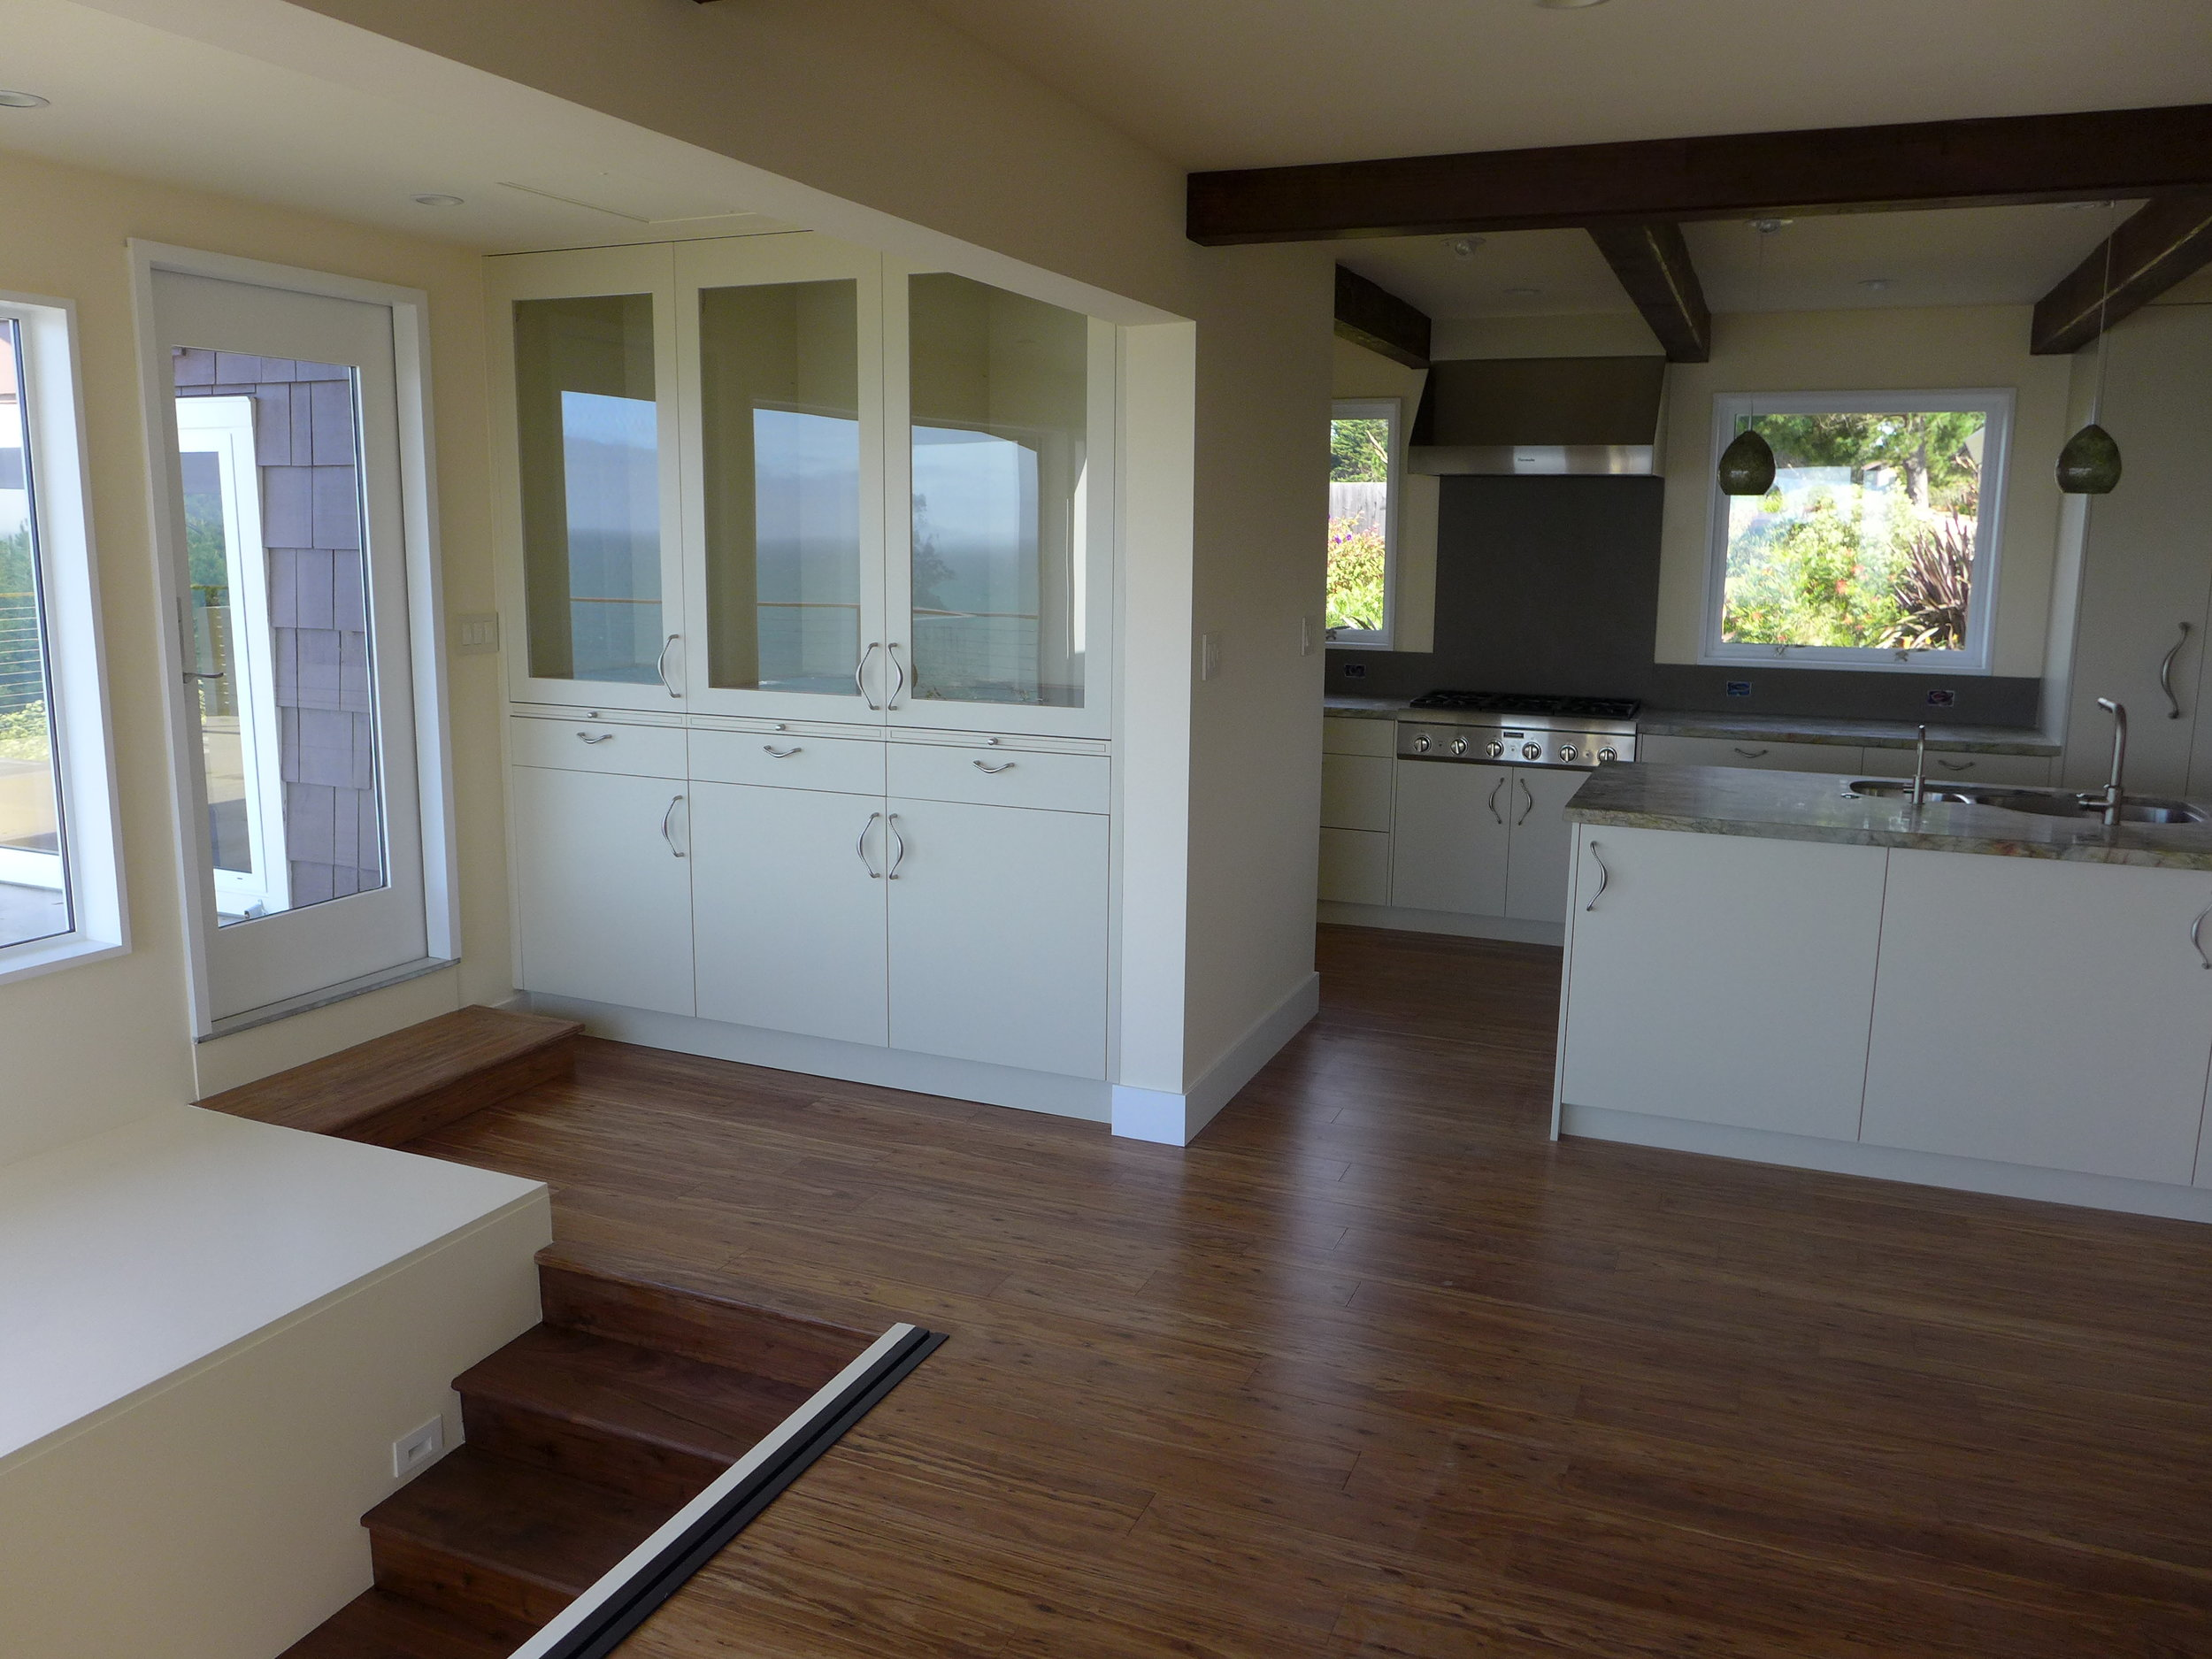 West Marin Remodel